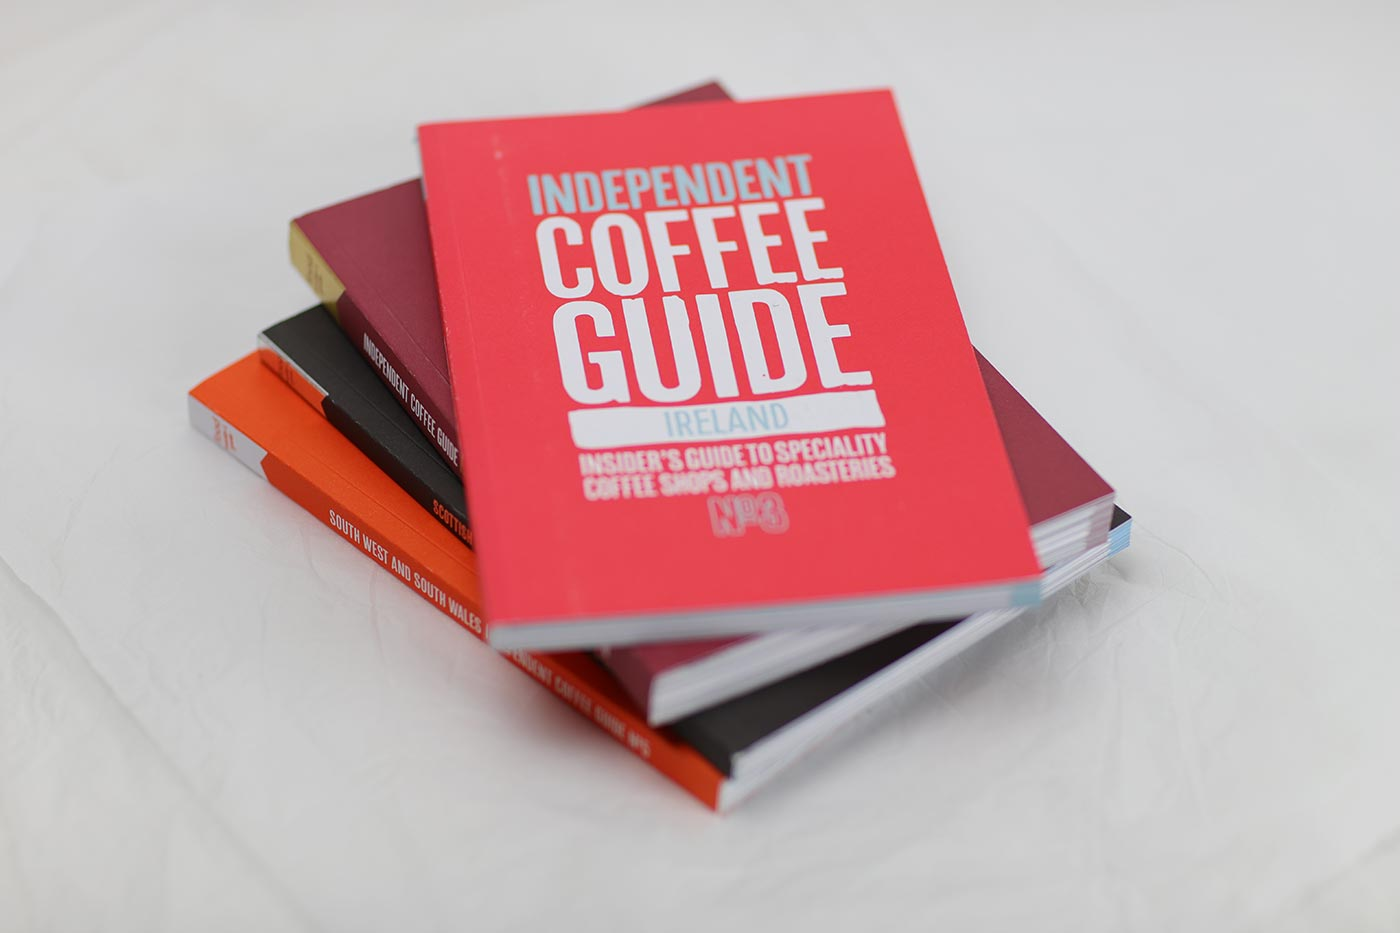 coffee guide bundle ireland